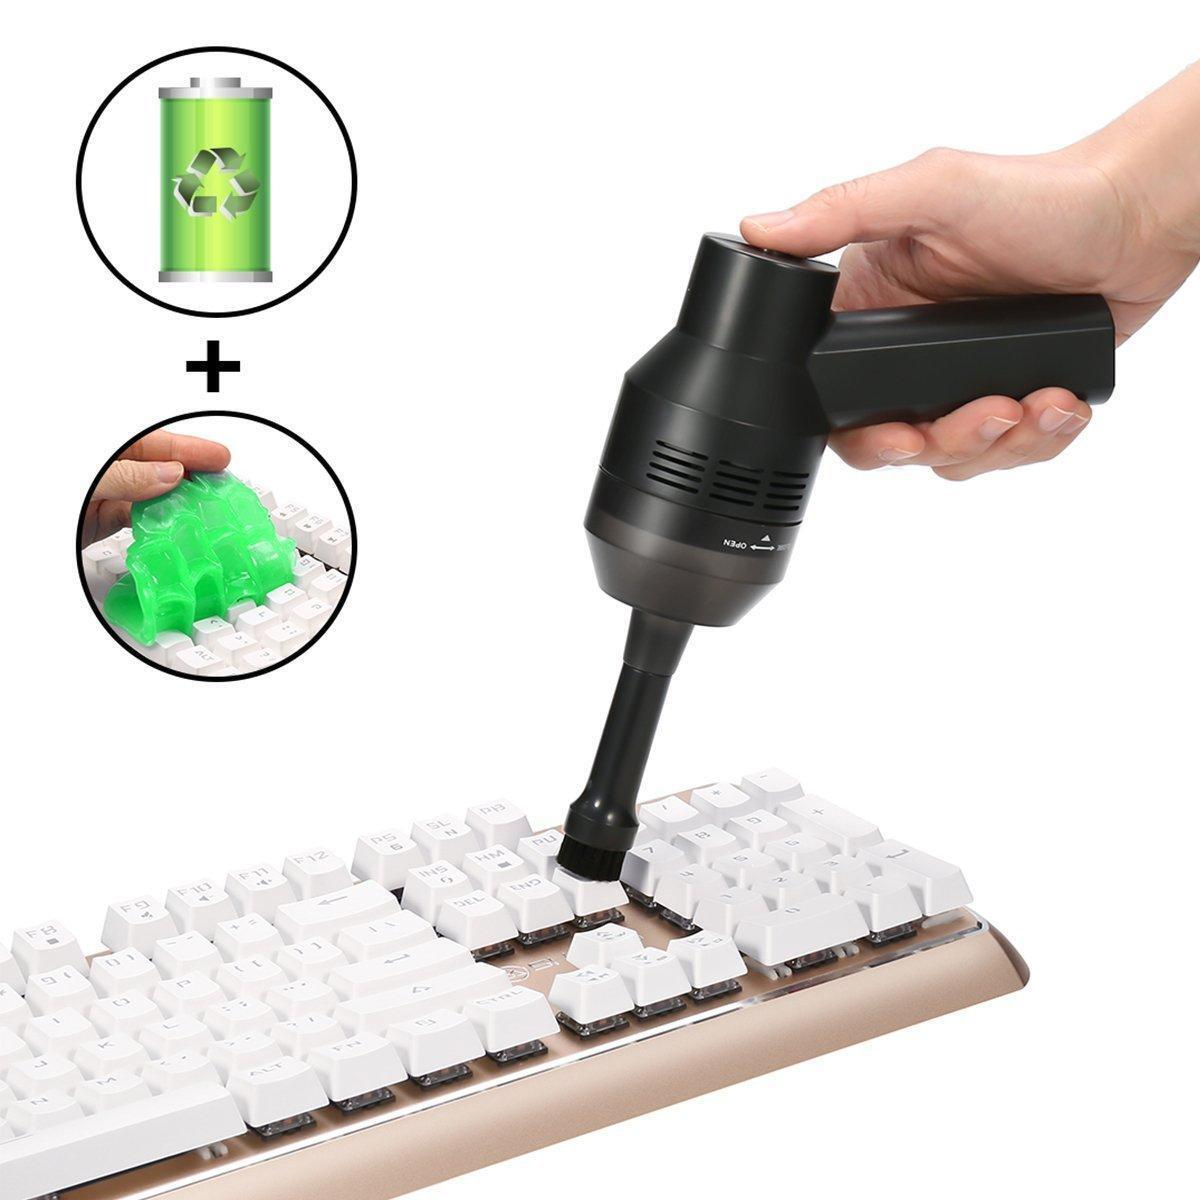 Details about Mini vacuum cleaner Desk top dust cleaning KeyboardCrumbsAsh USBBattery